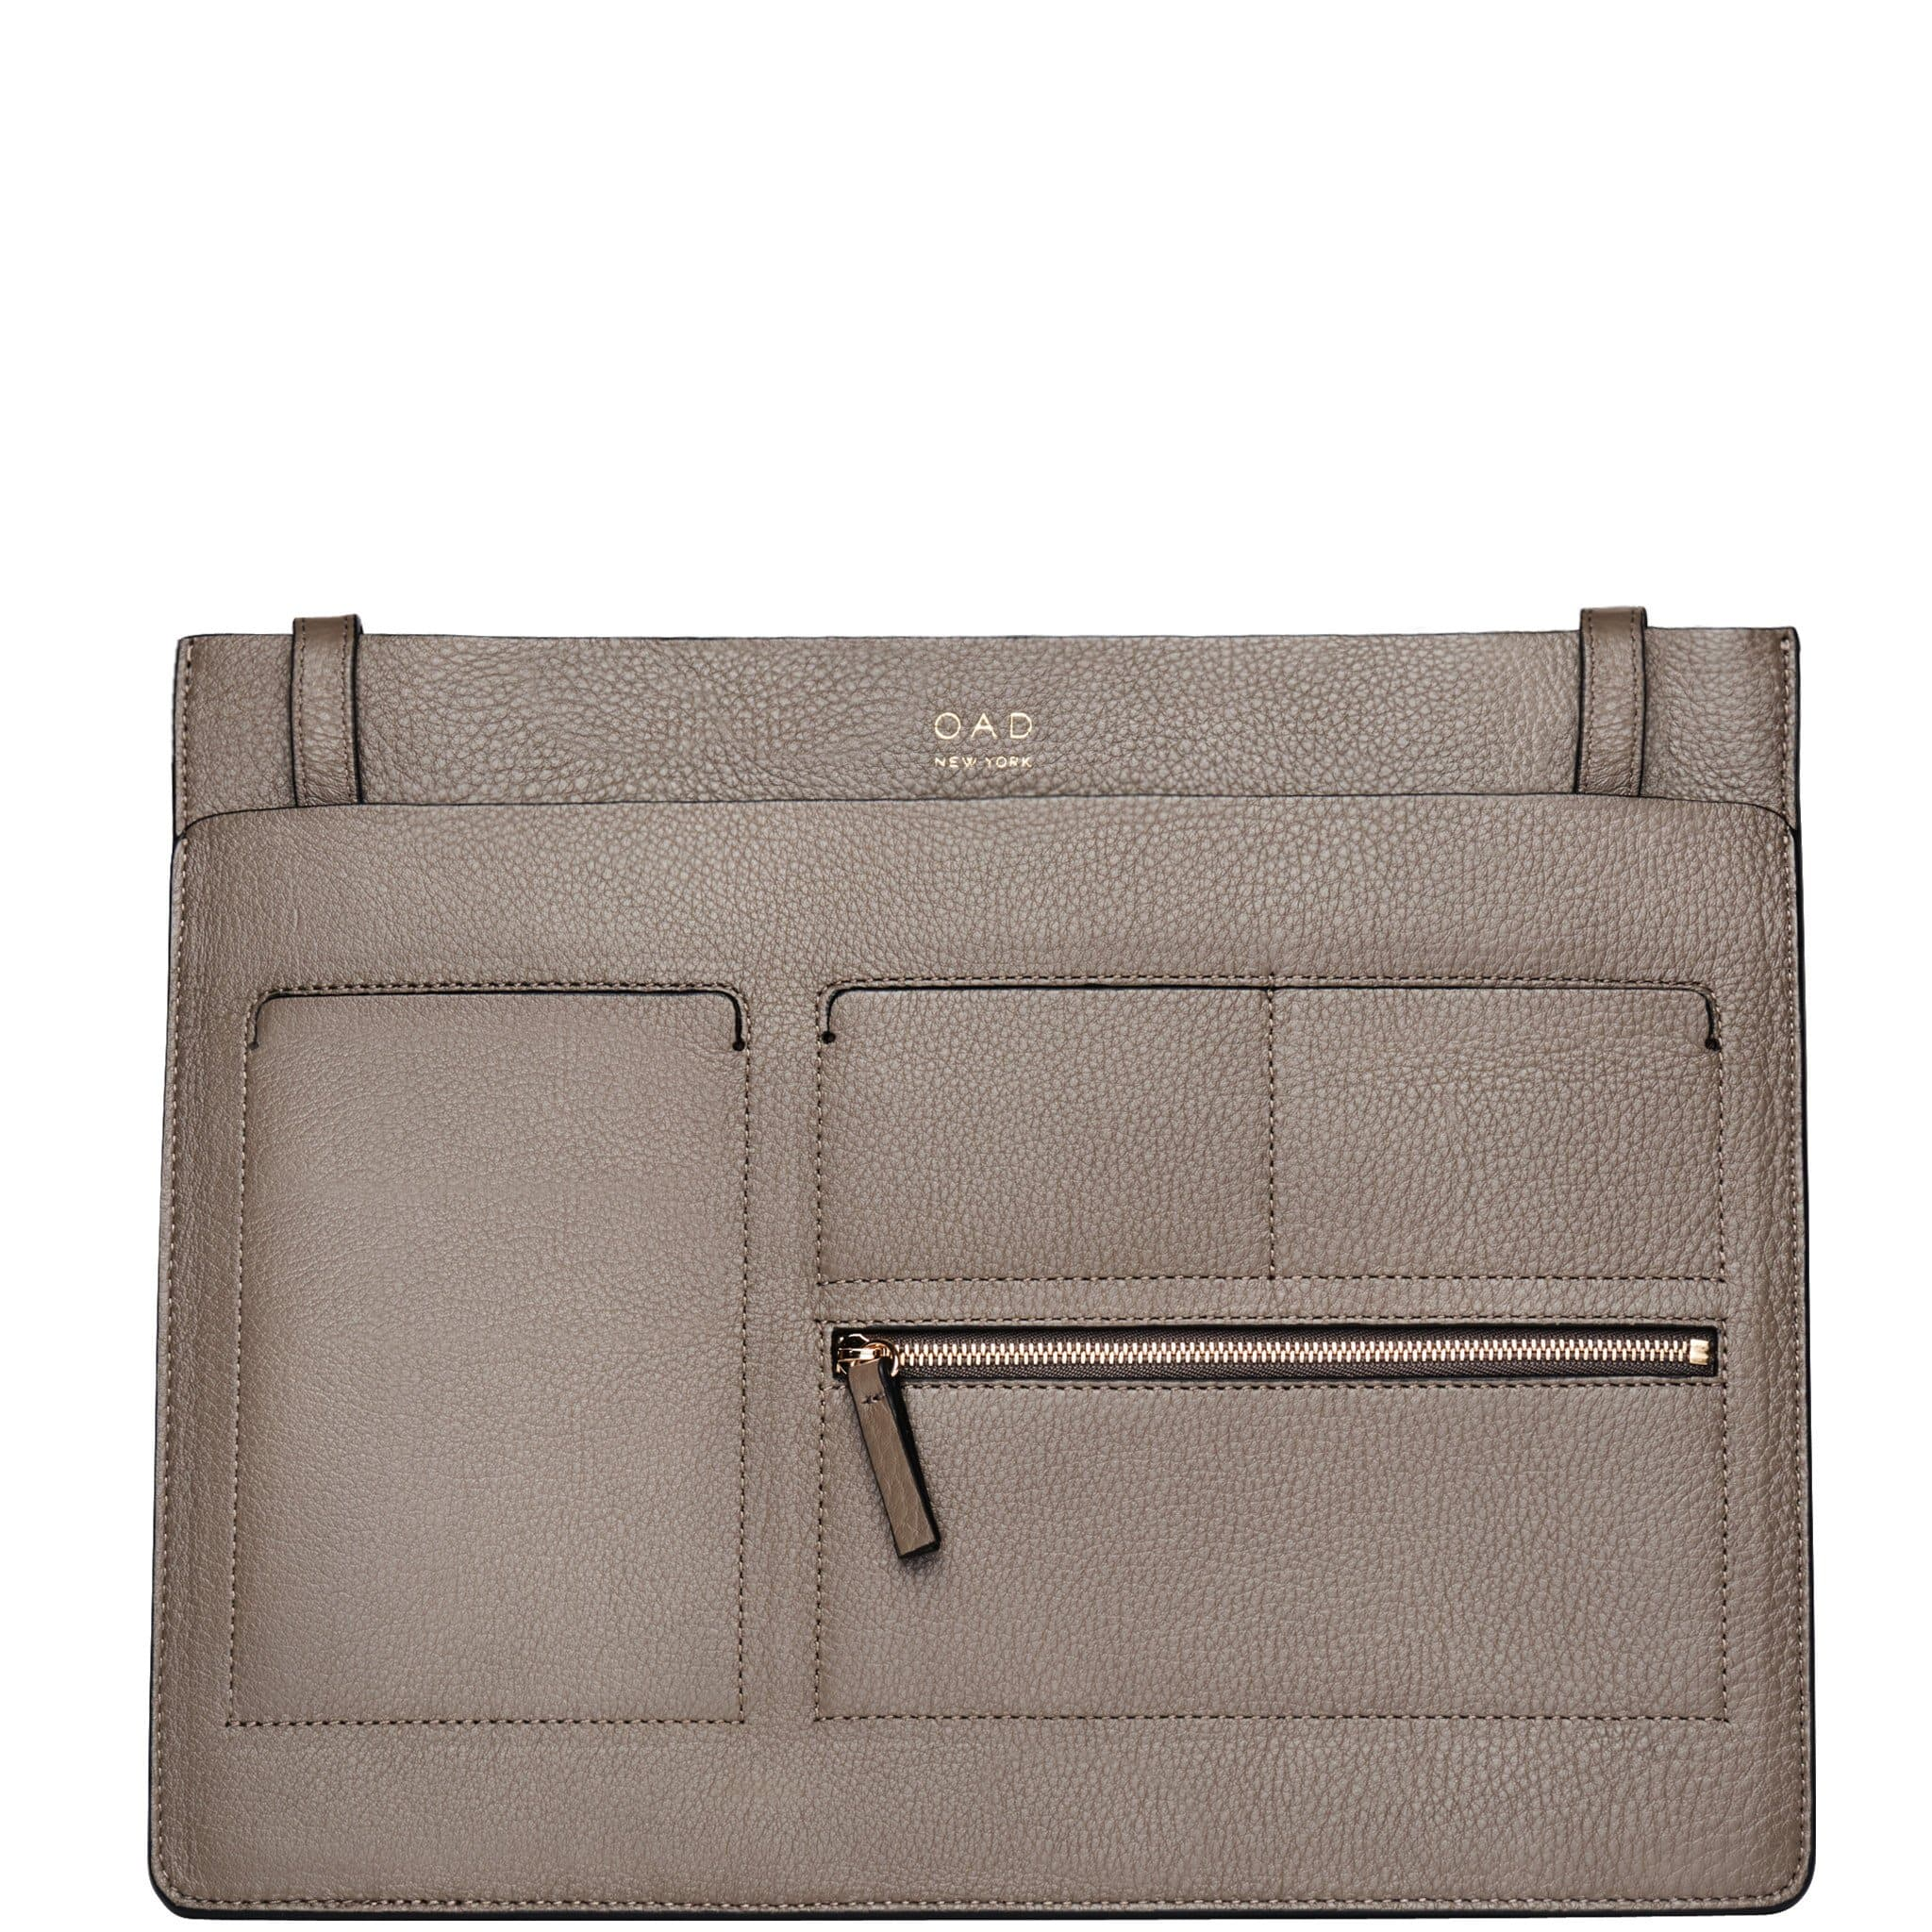 Kit Tote - Pebble Grey - OAD NEW YORK - 1